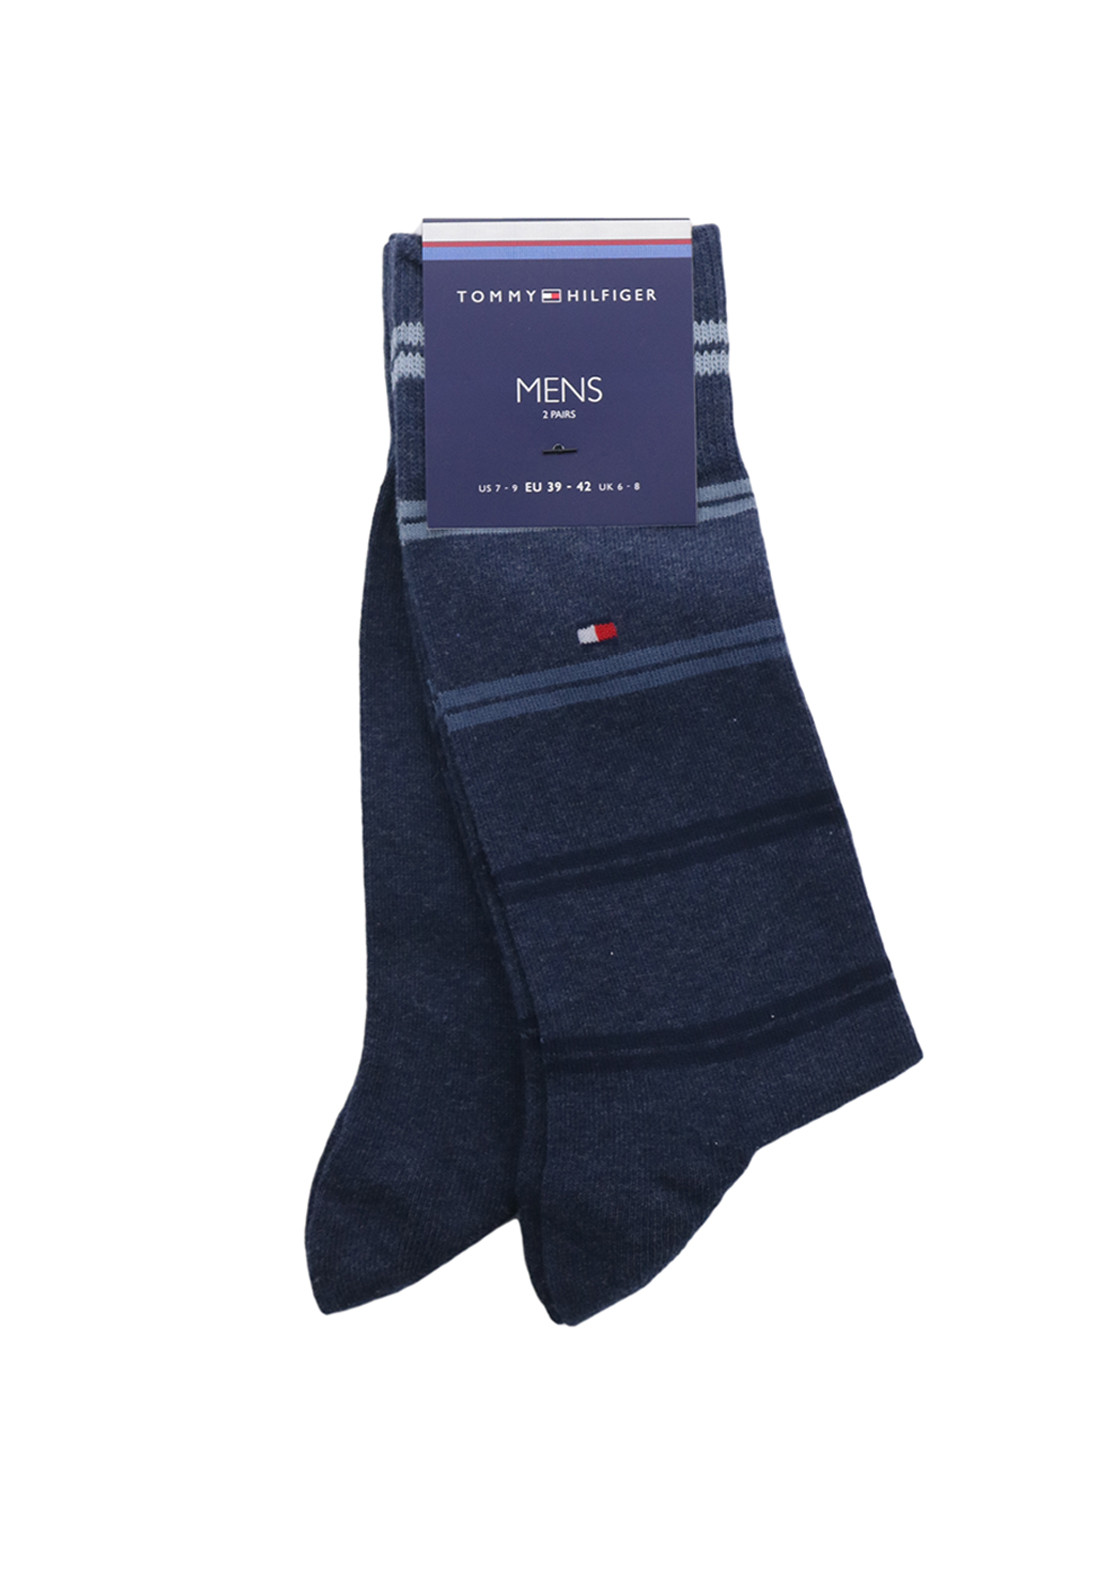 Tommy Hilfiger Mens 2 Pair Socks, Navy